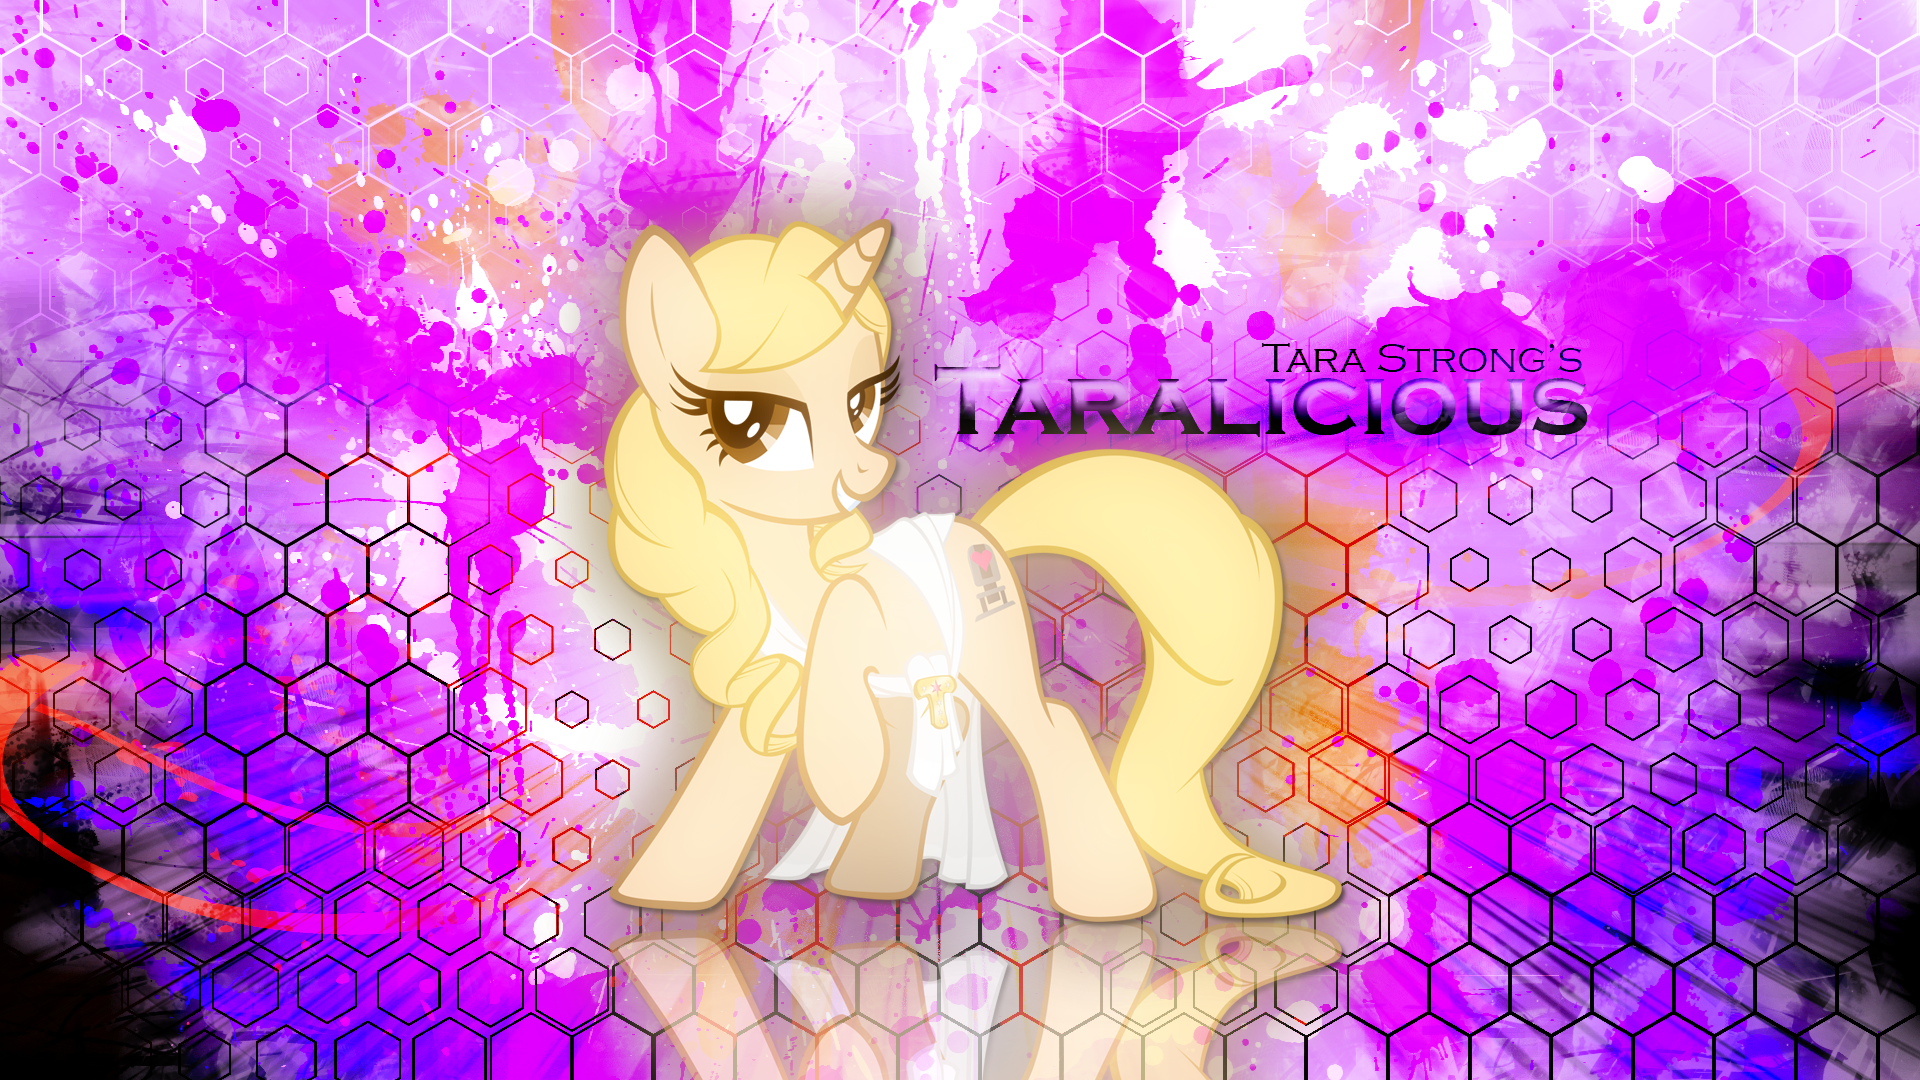 Taralicious is Full of Magic Wallpaper by EnemyD